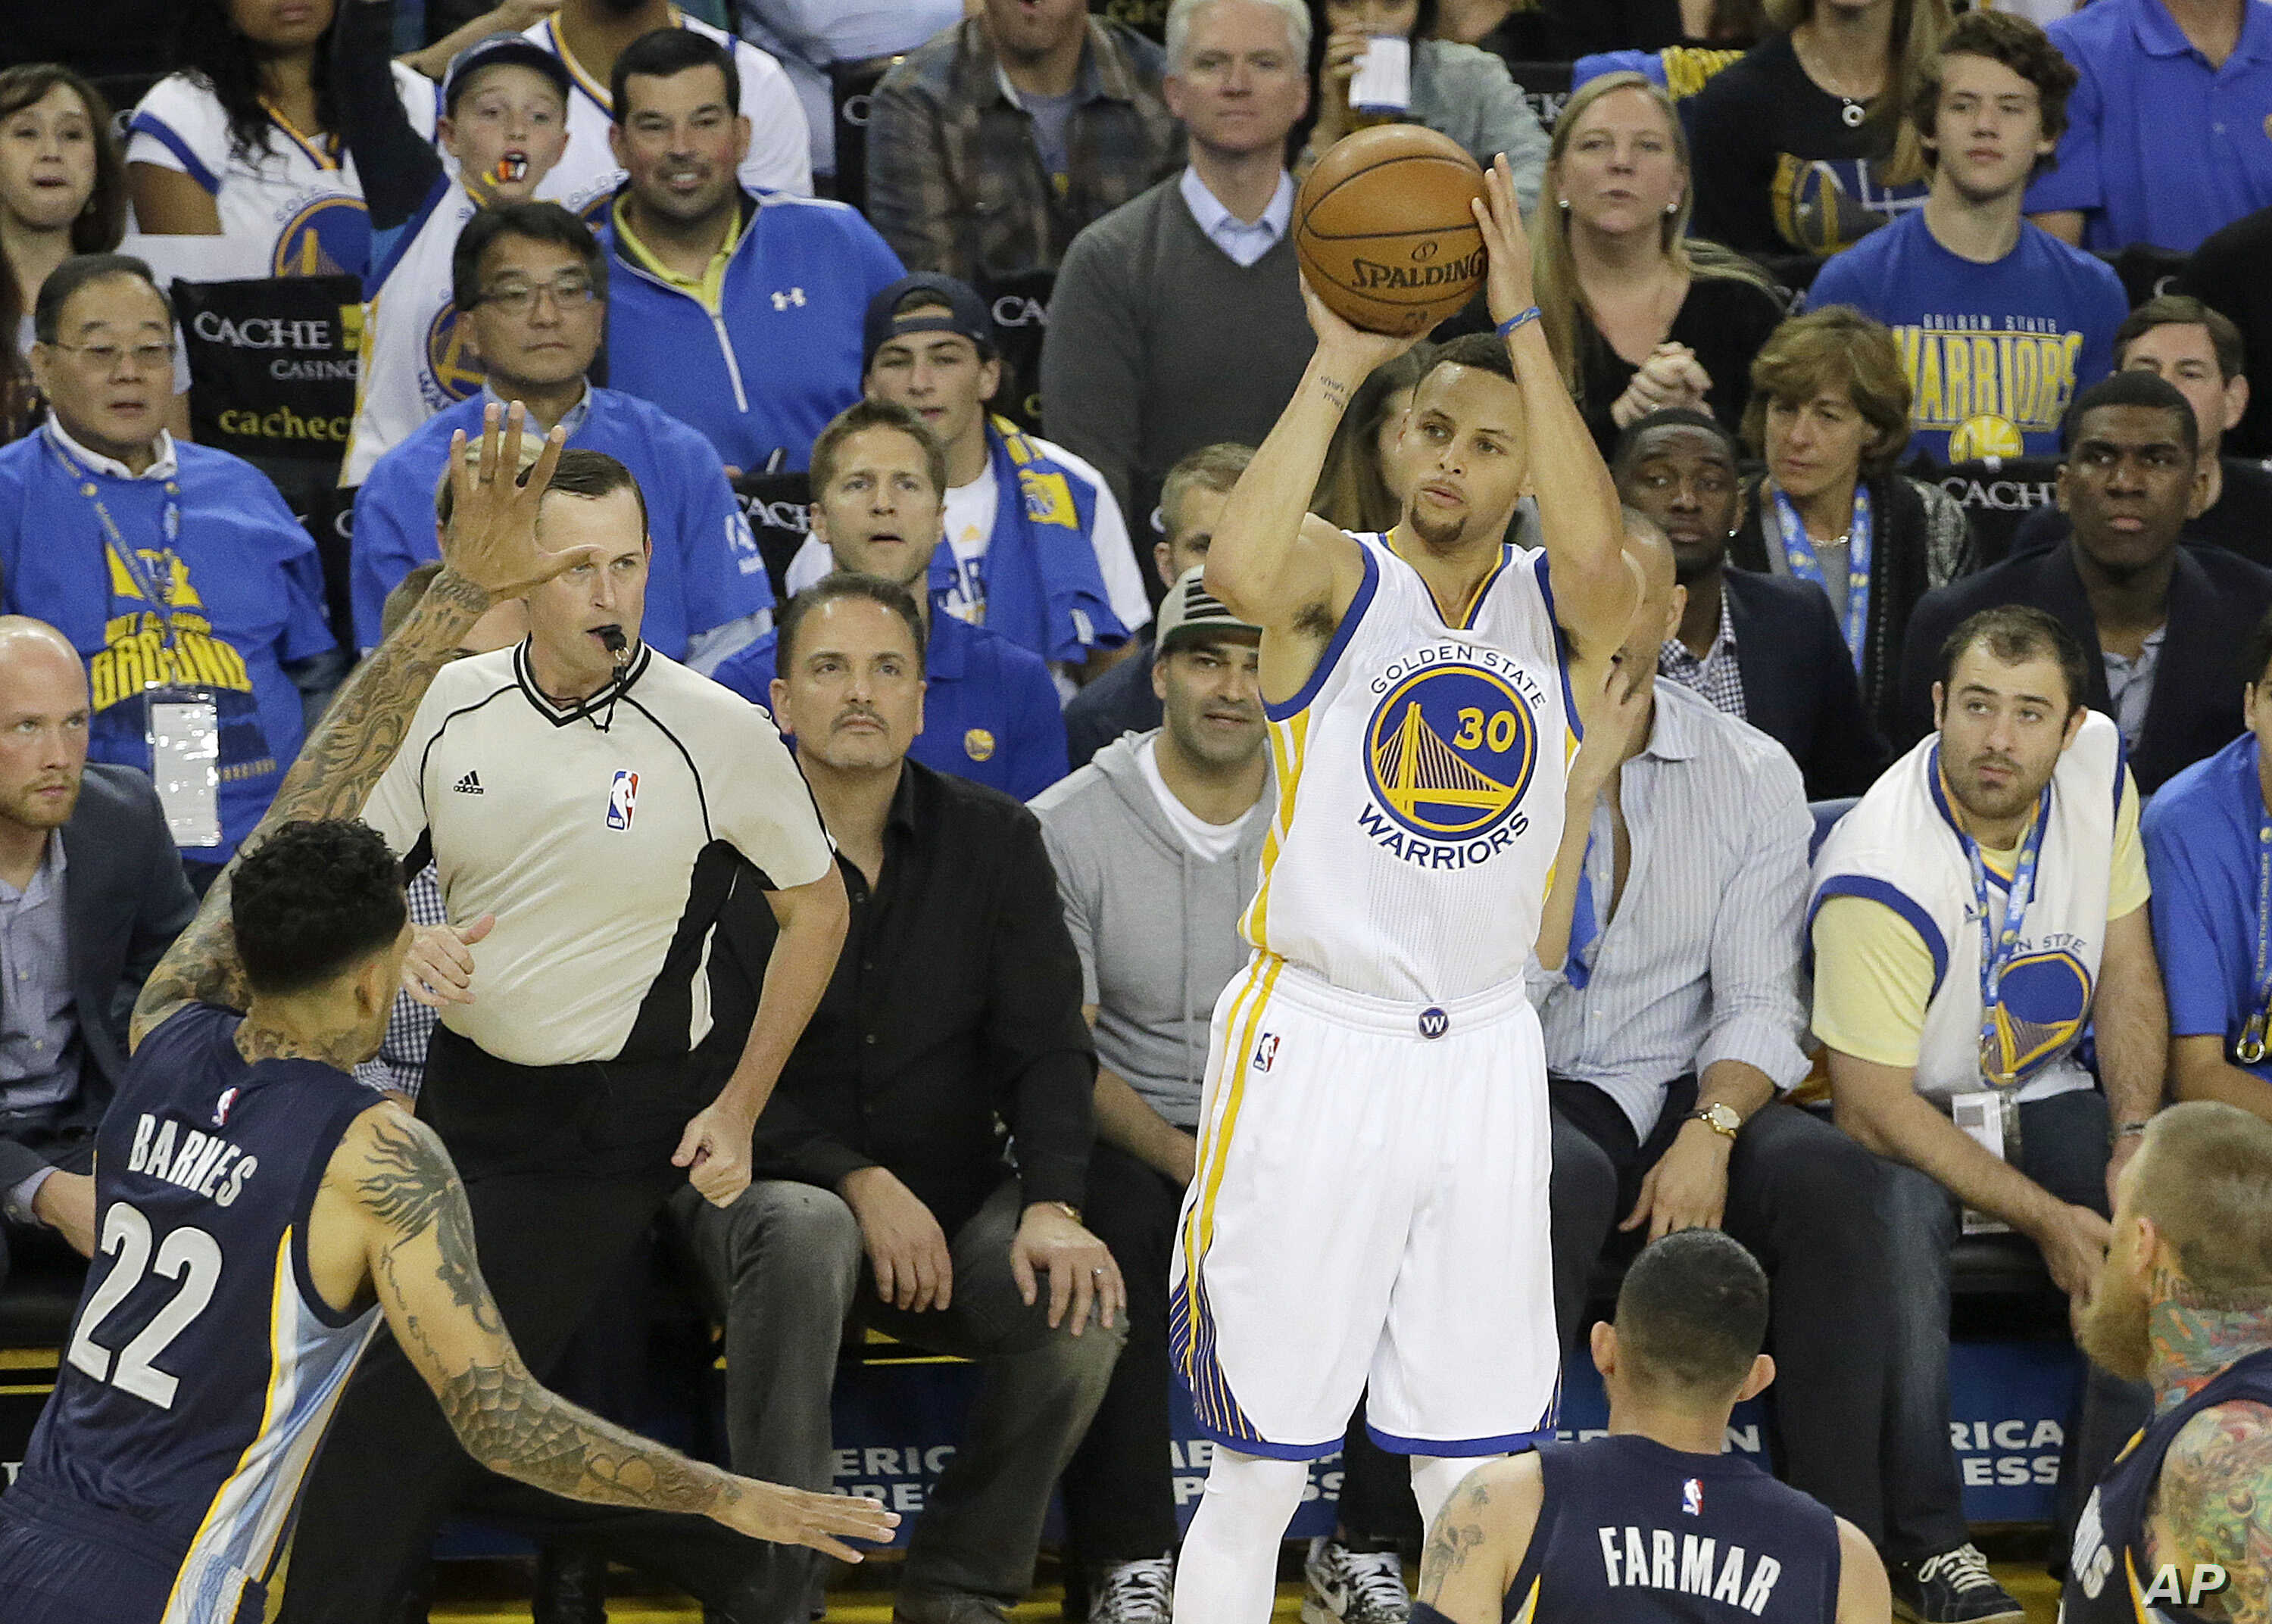 Golden State Warriors guard Stephen Curry (30) shoots a three point basket during the first half of an NBA basketball game against the Memphis Grizzlies in Oakland, Calif., Wednesday, April 13, 2016.